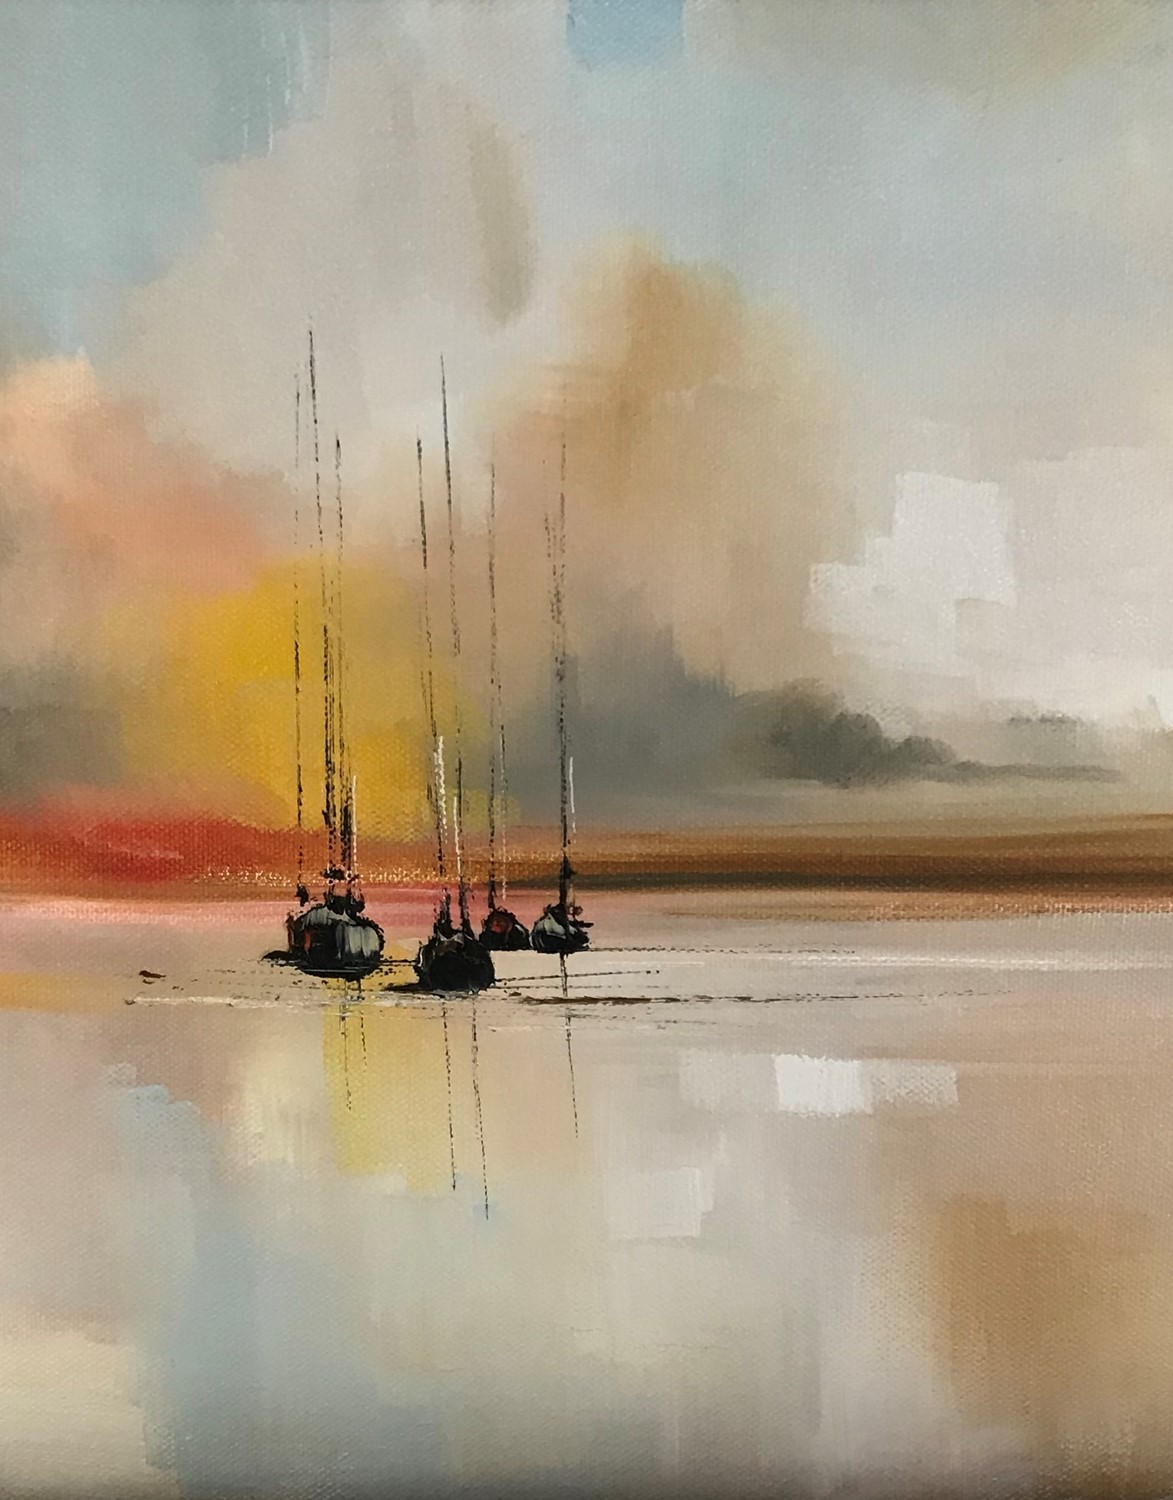 'The Tranquility of nightfall' by artist Rosanne Barr